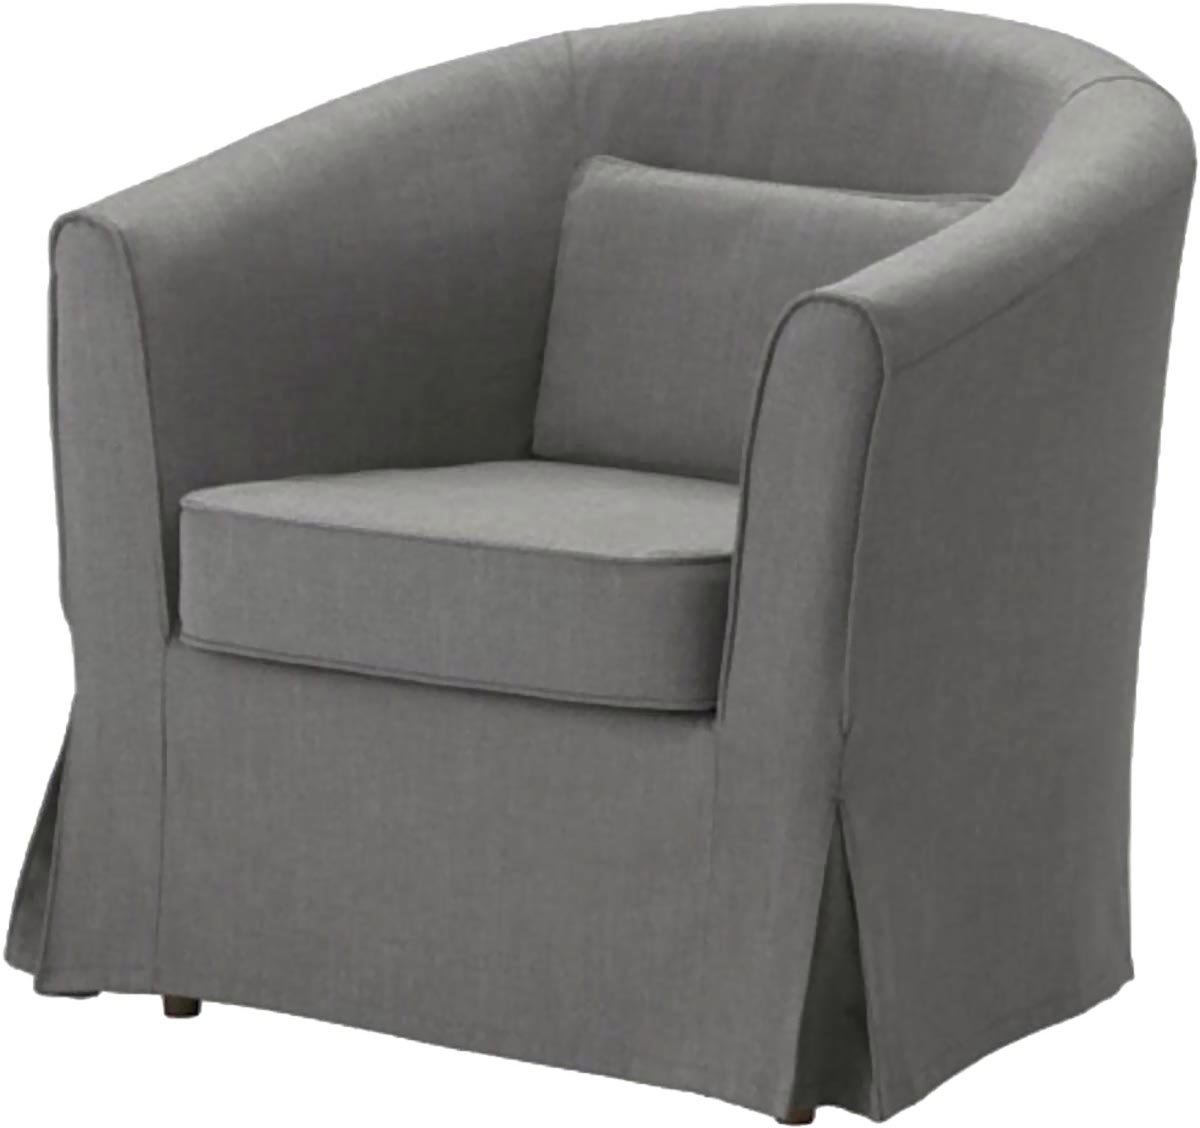 Buy Chicago Textile Puff Chair Replacement Cover With